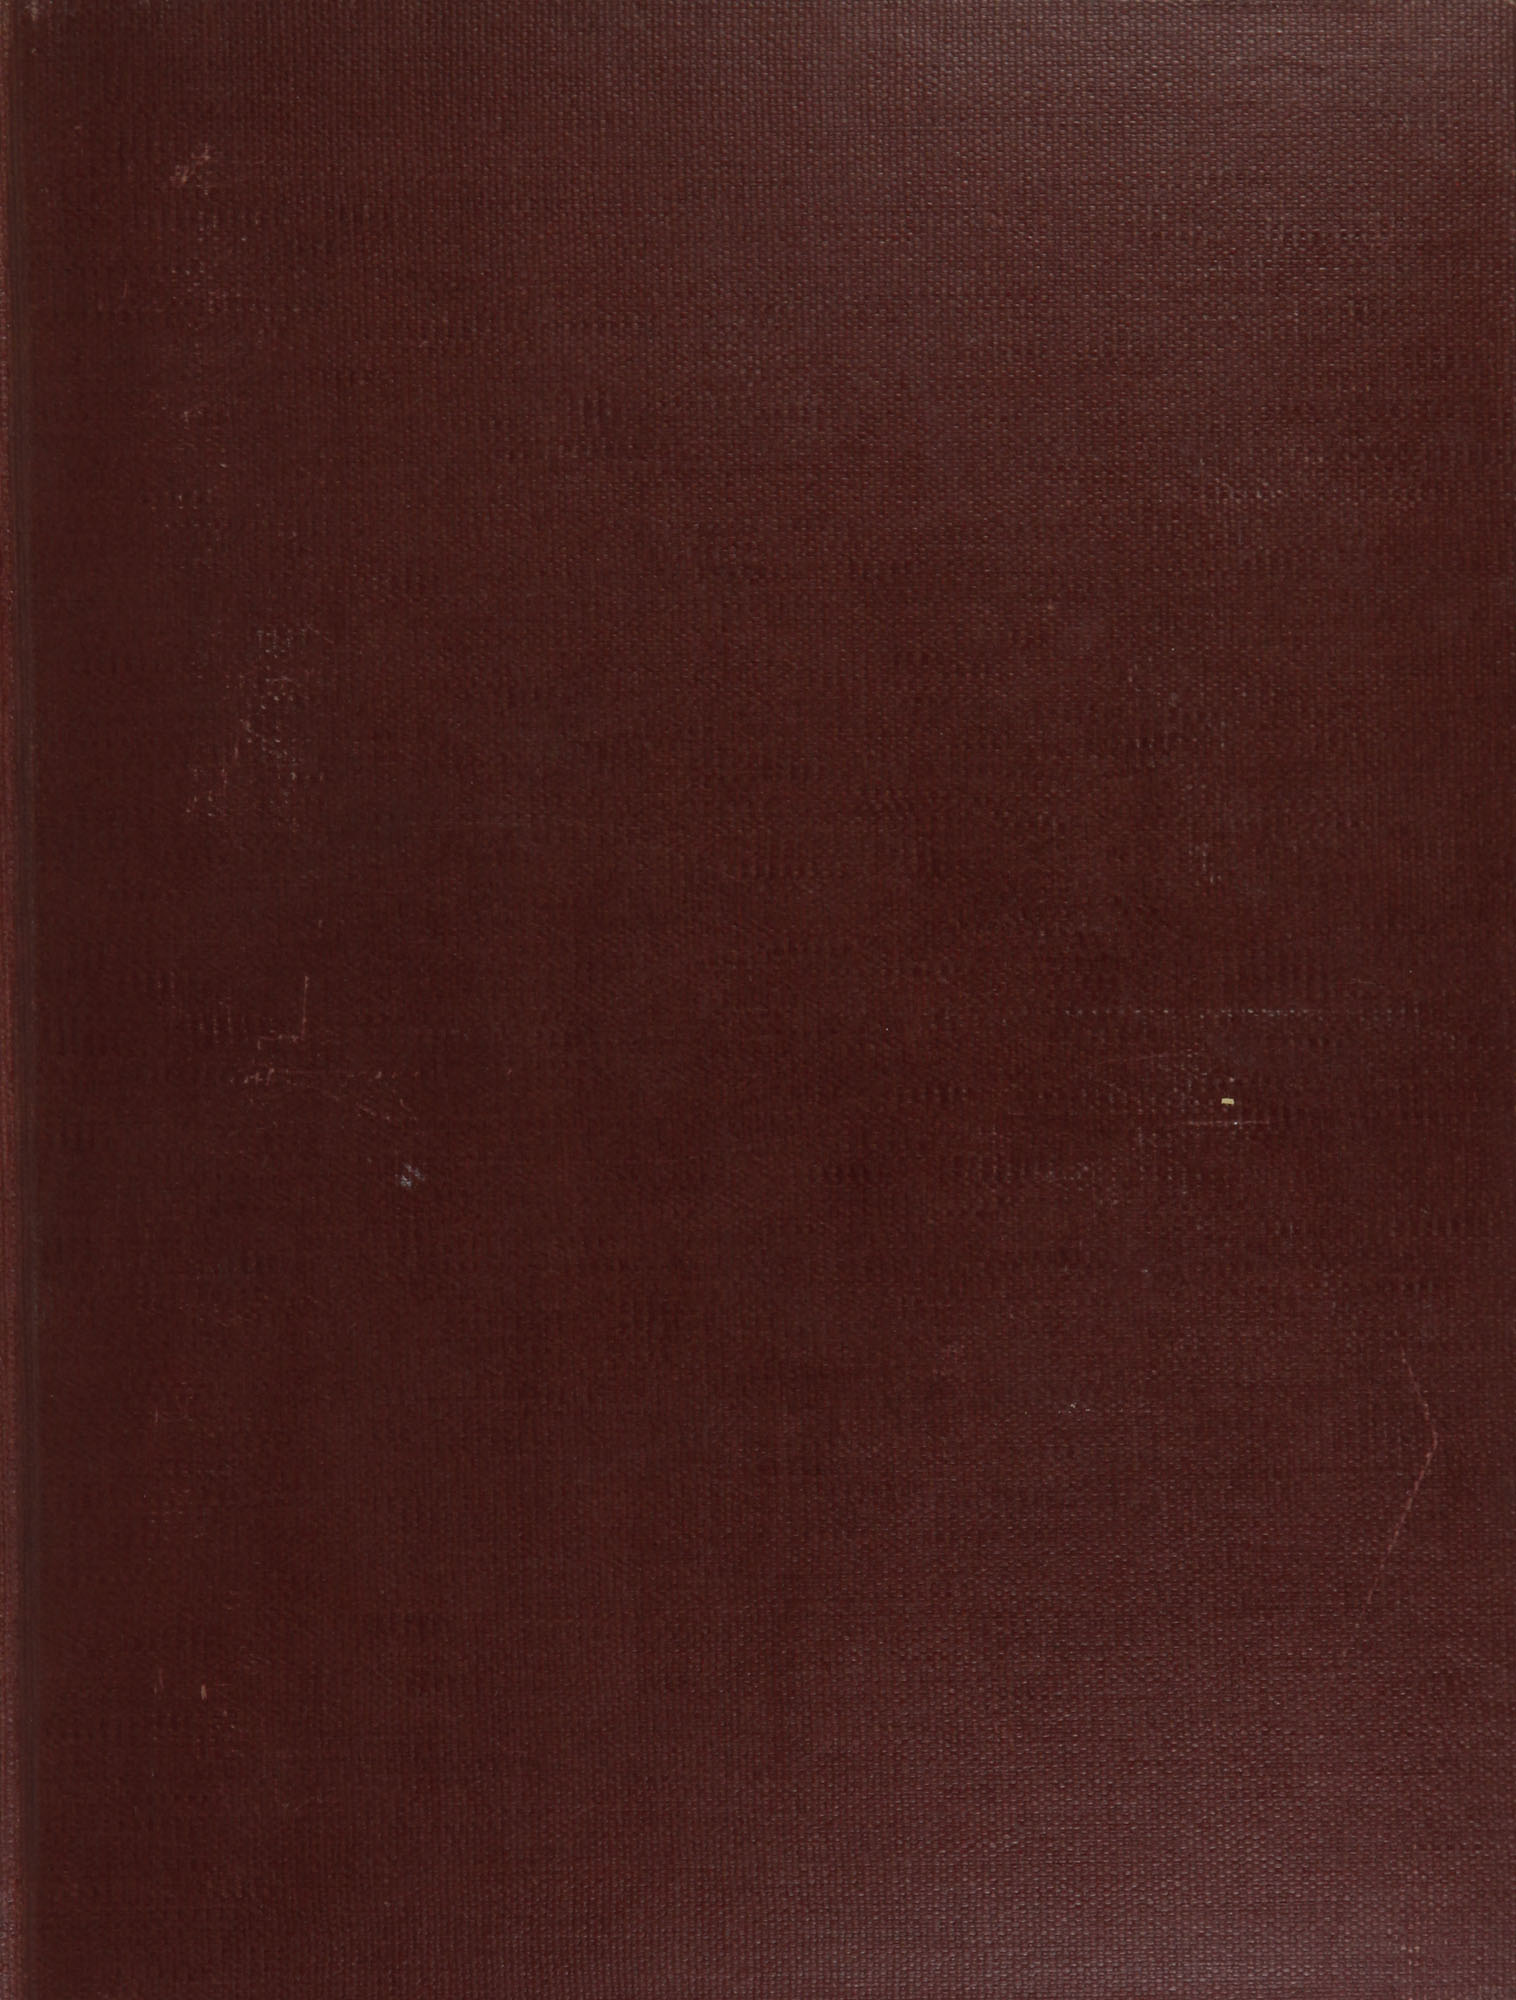 College of Charleston Magazine, 1937-1938, front cover